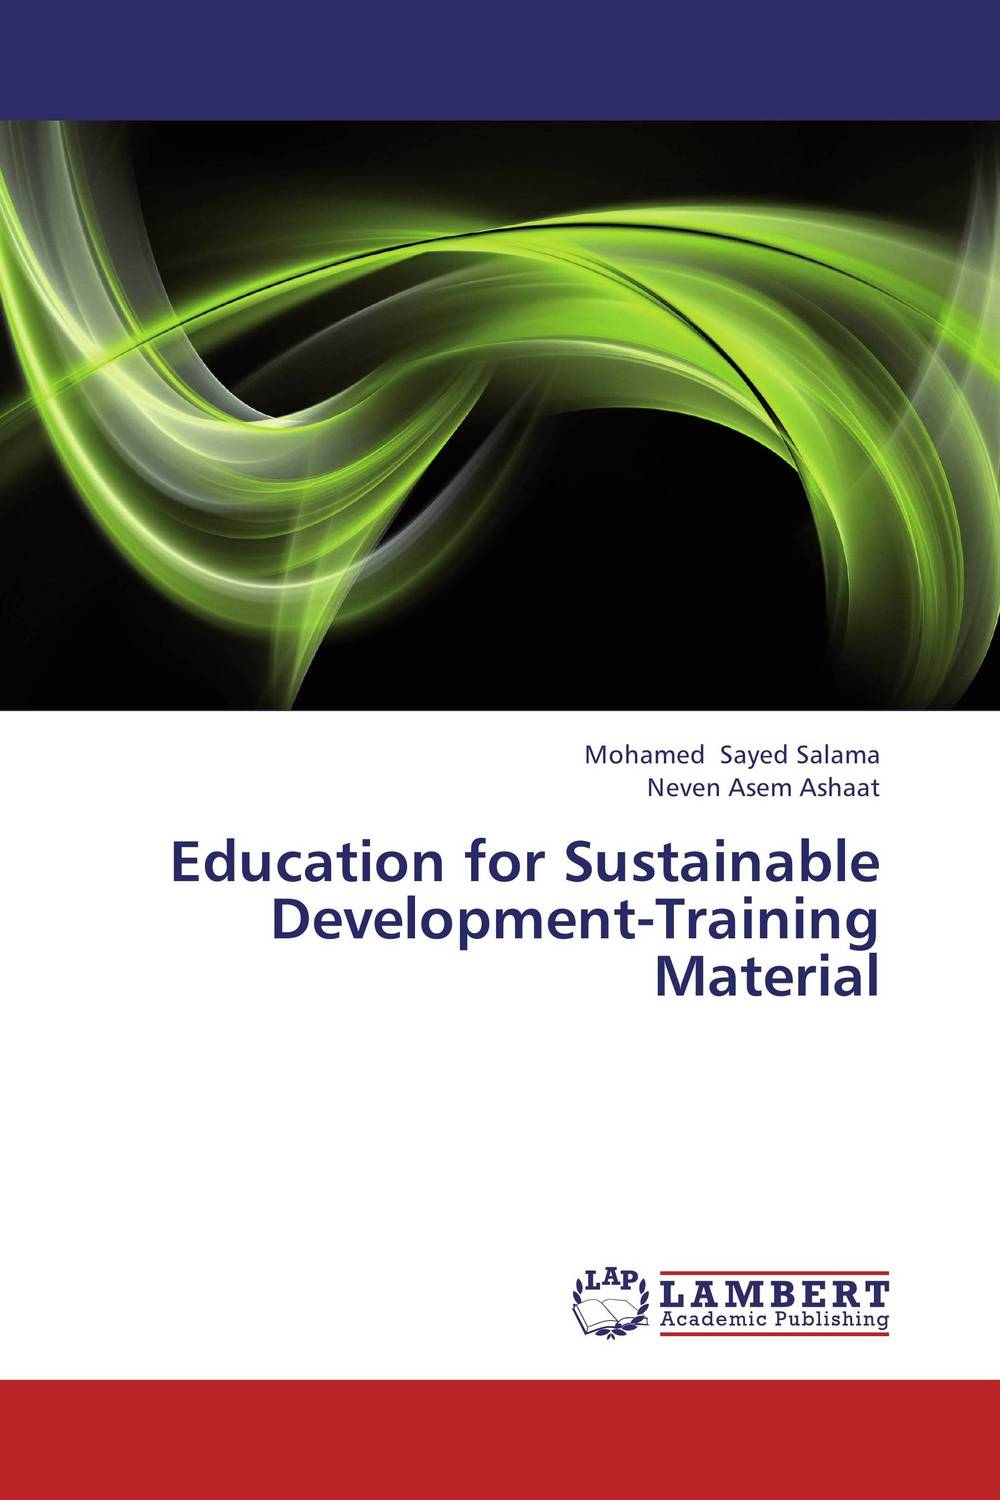 Education for Sustainable Development-Training Material elaine biech training and development for dummies